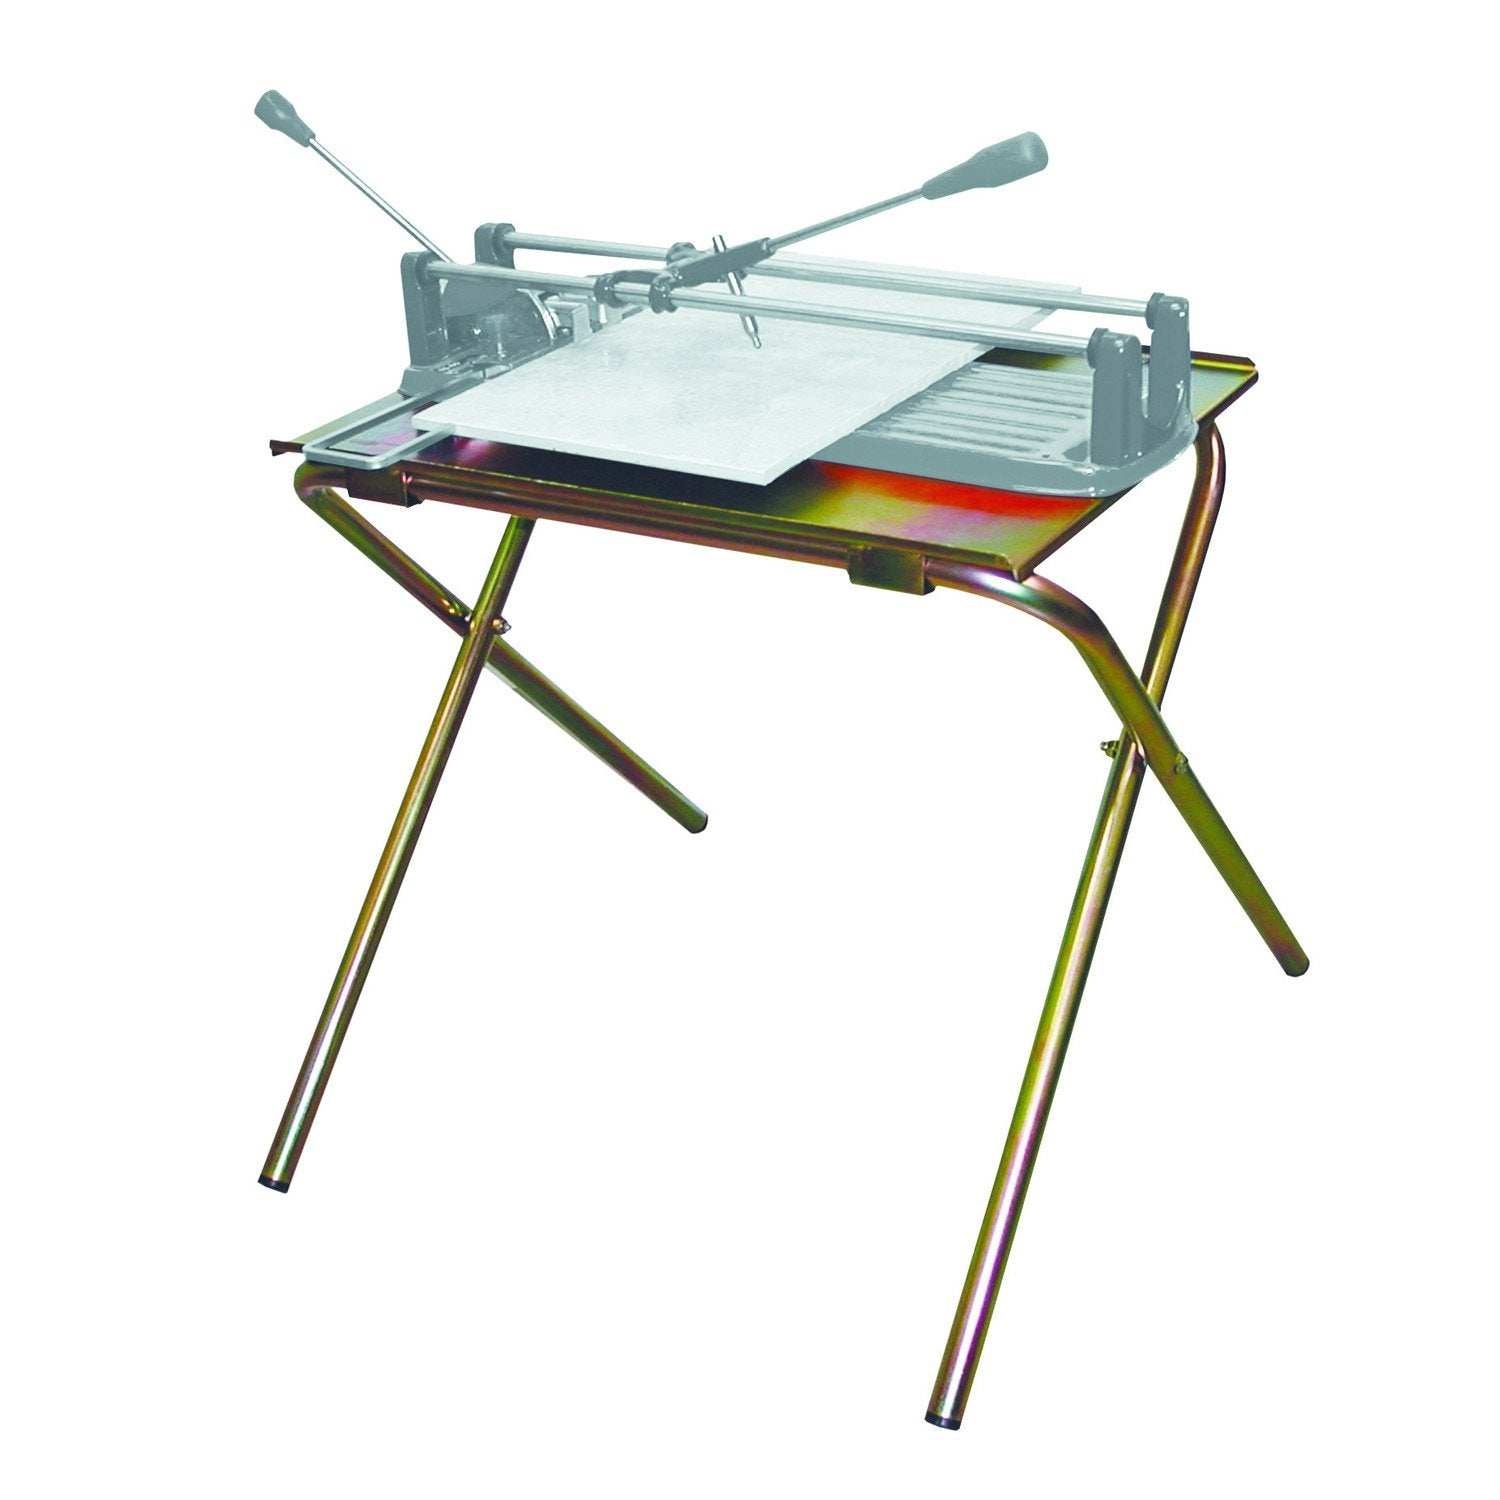 Table pliante r glable rubi leroy merlin - Table pliante leroy merlin ...